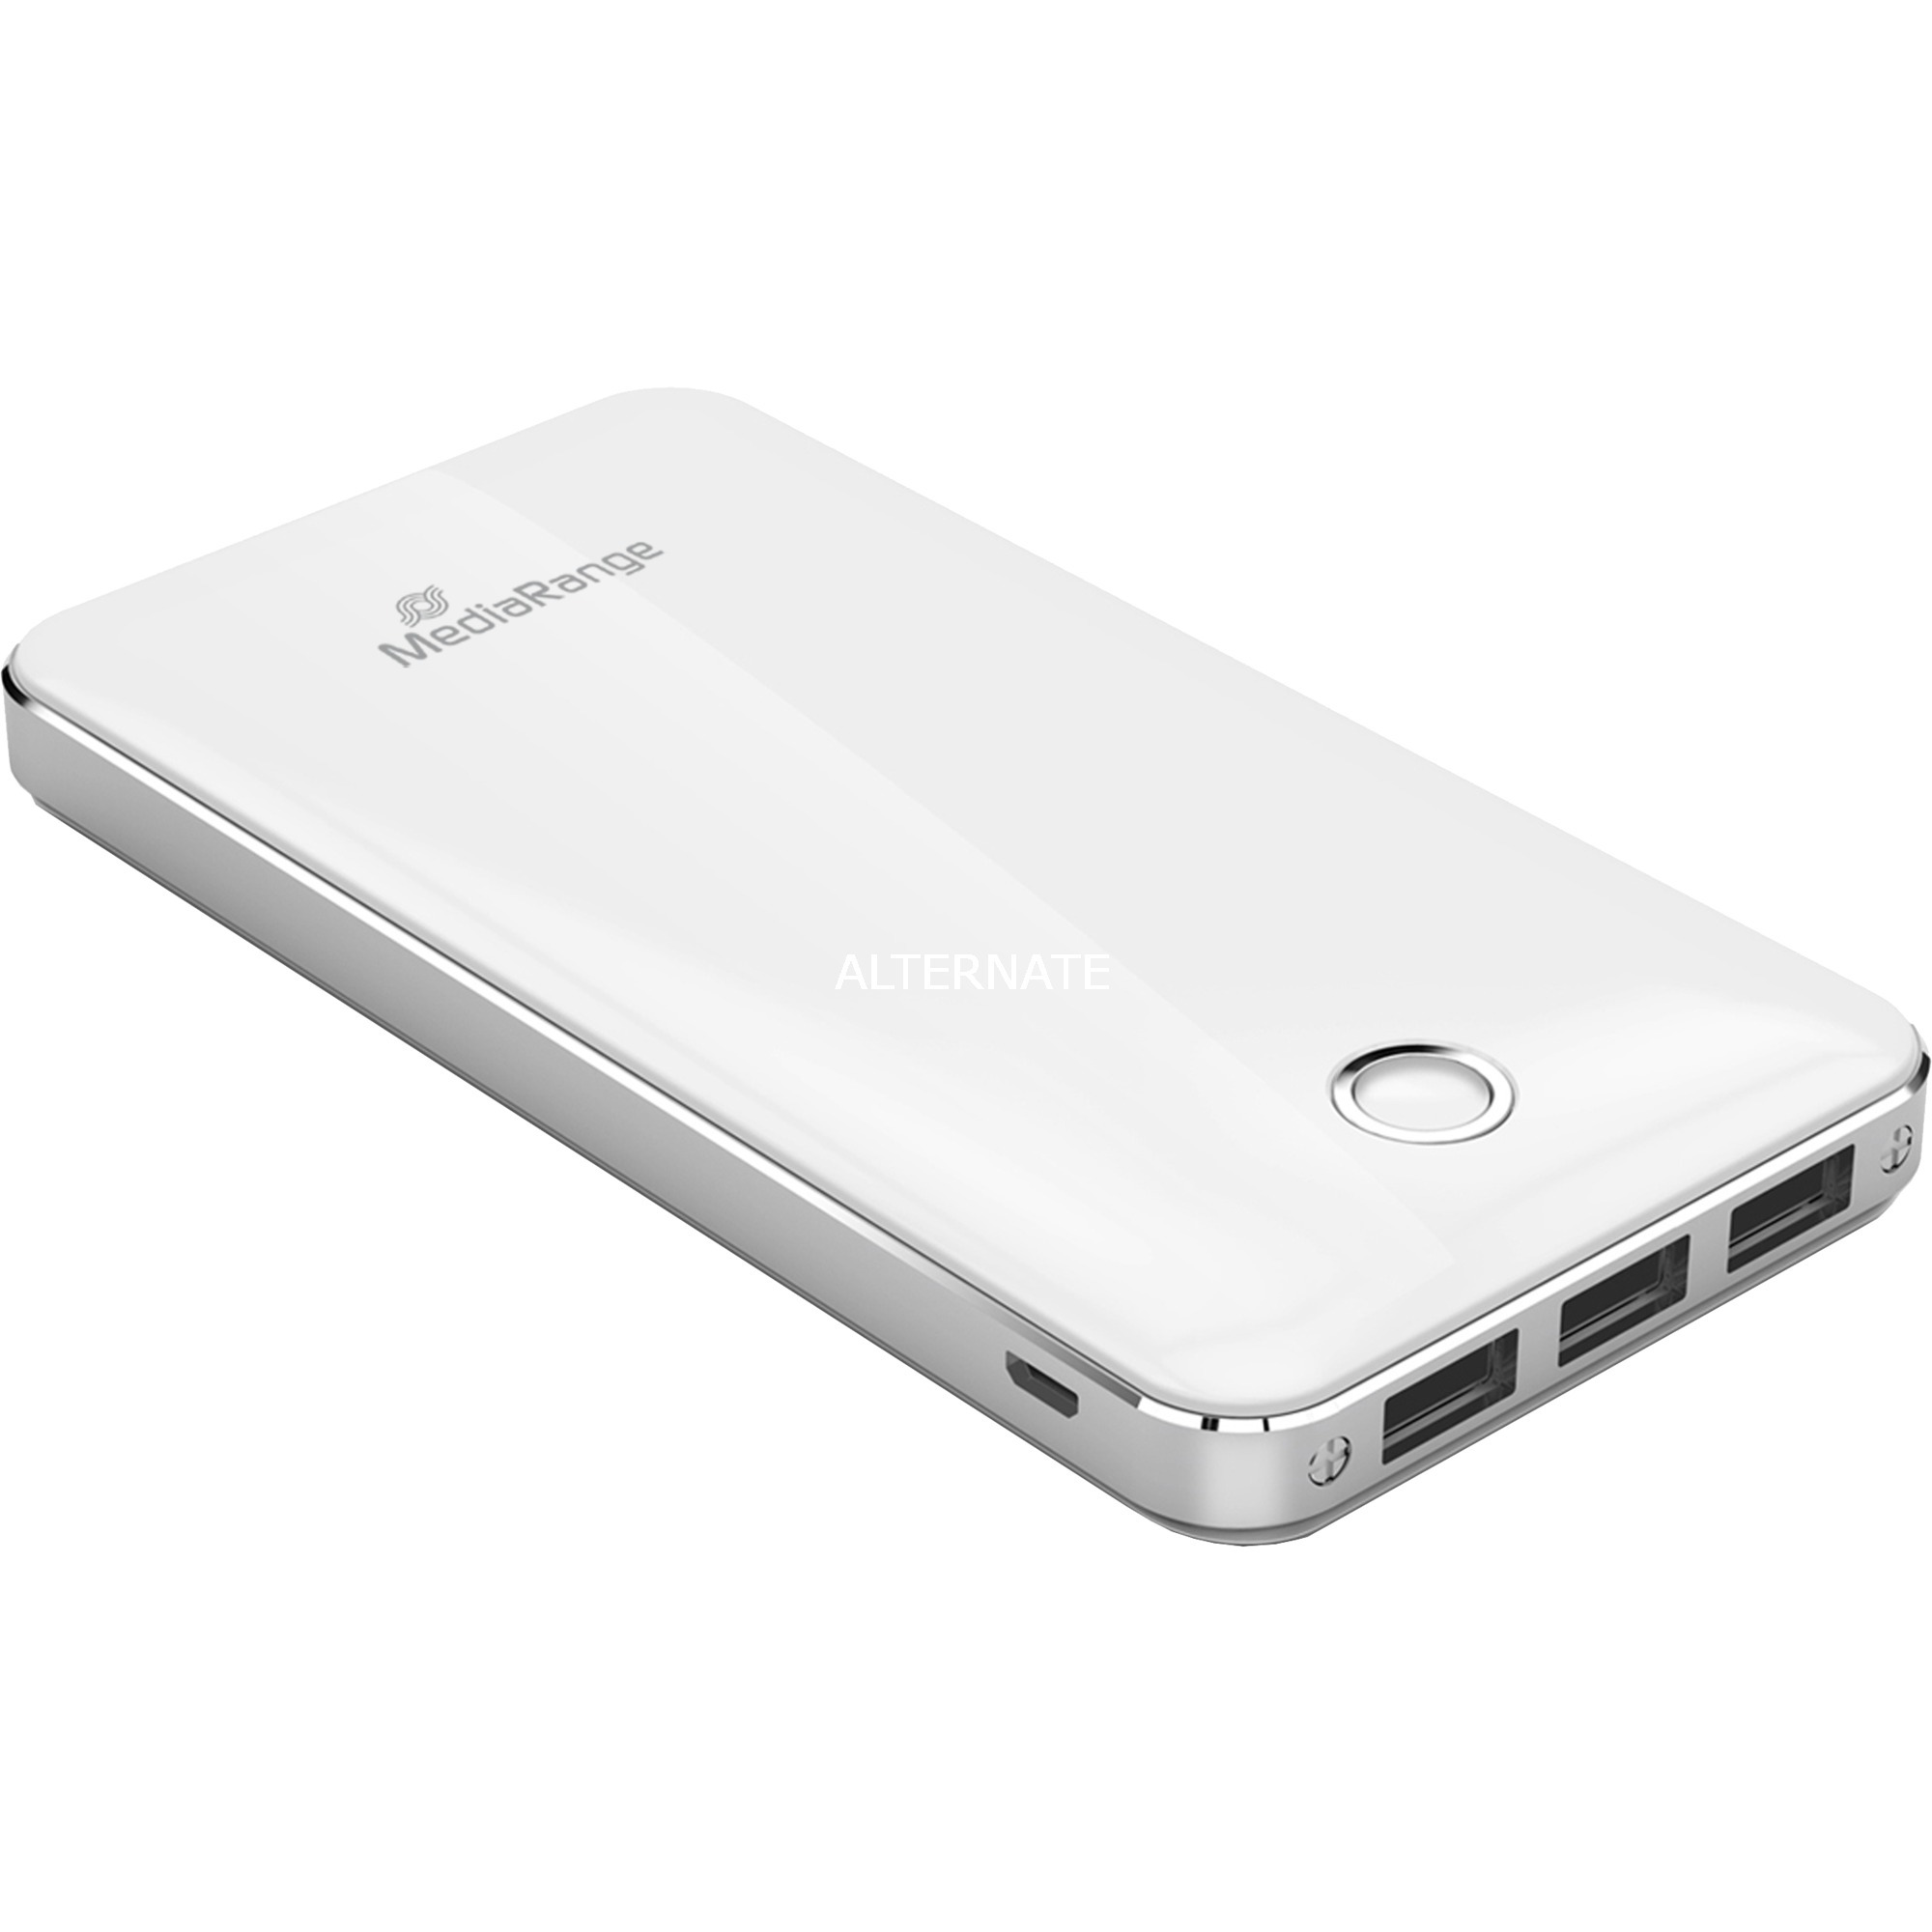 mr747-powerbank-10000mah-power-bank